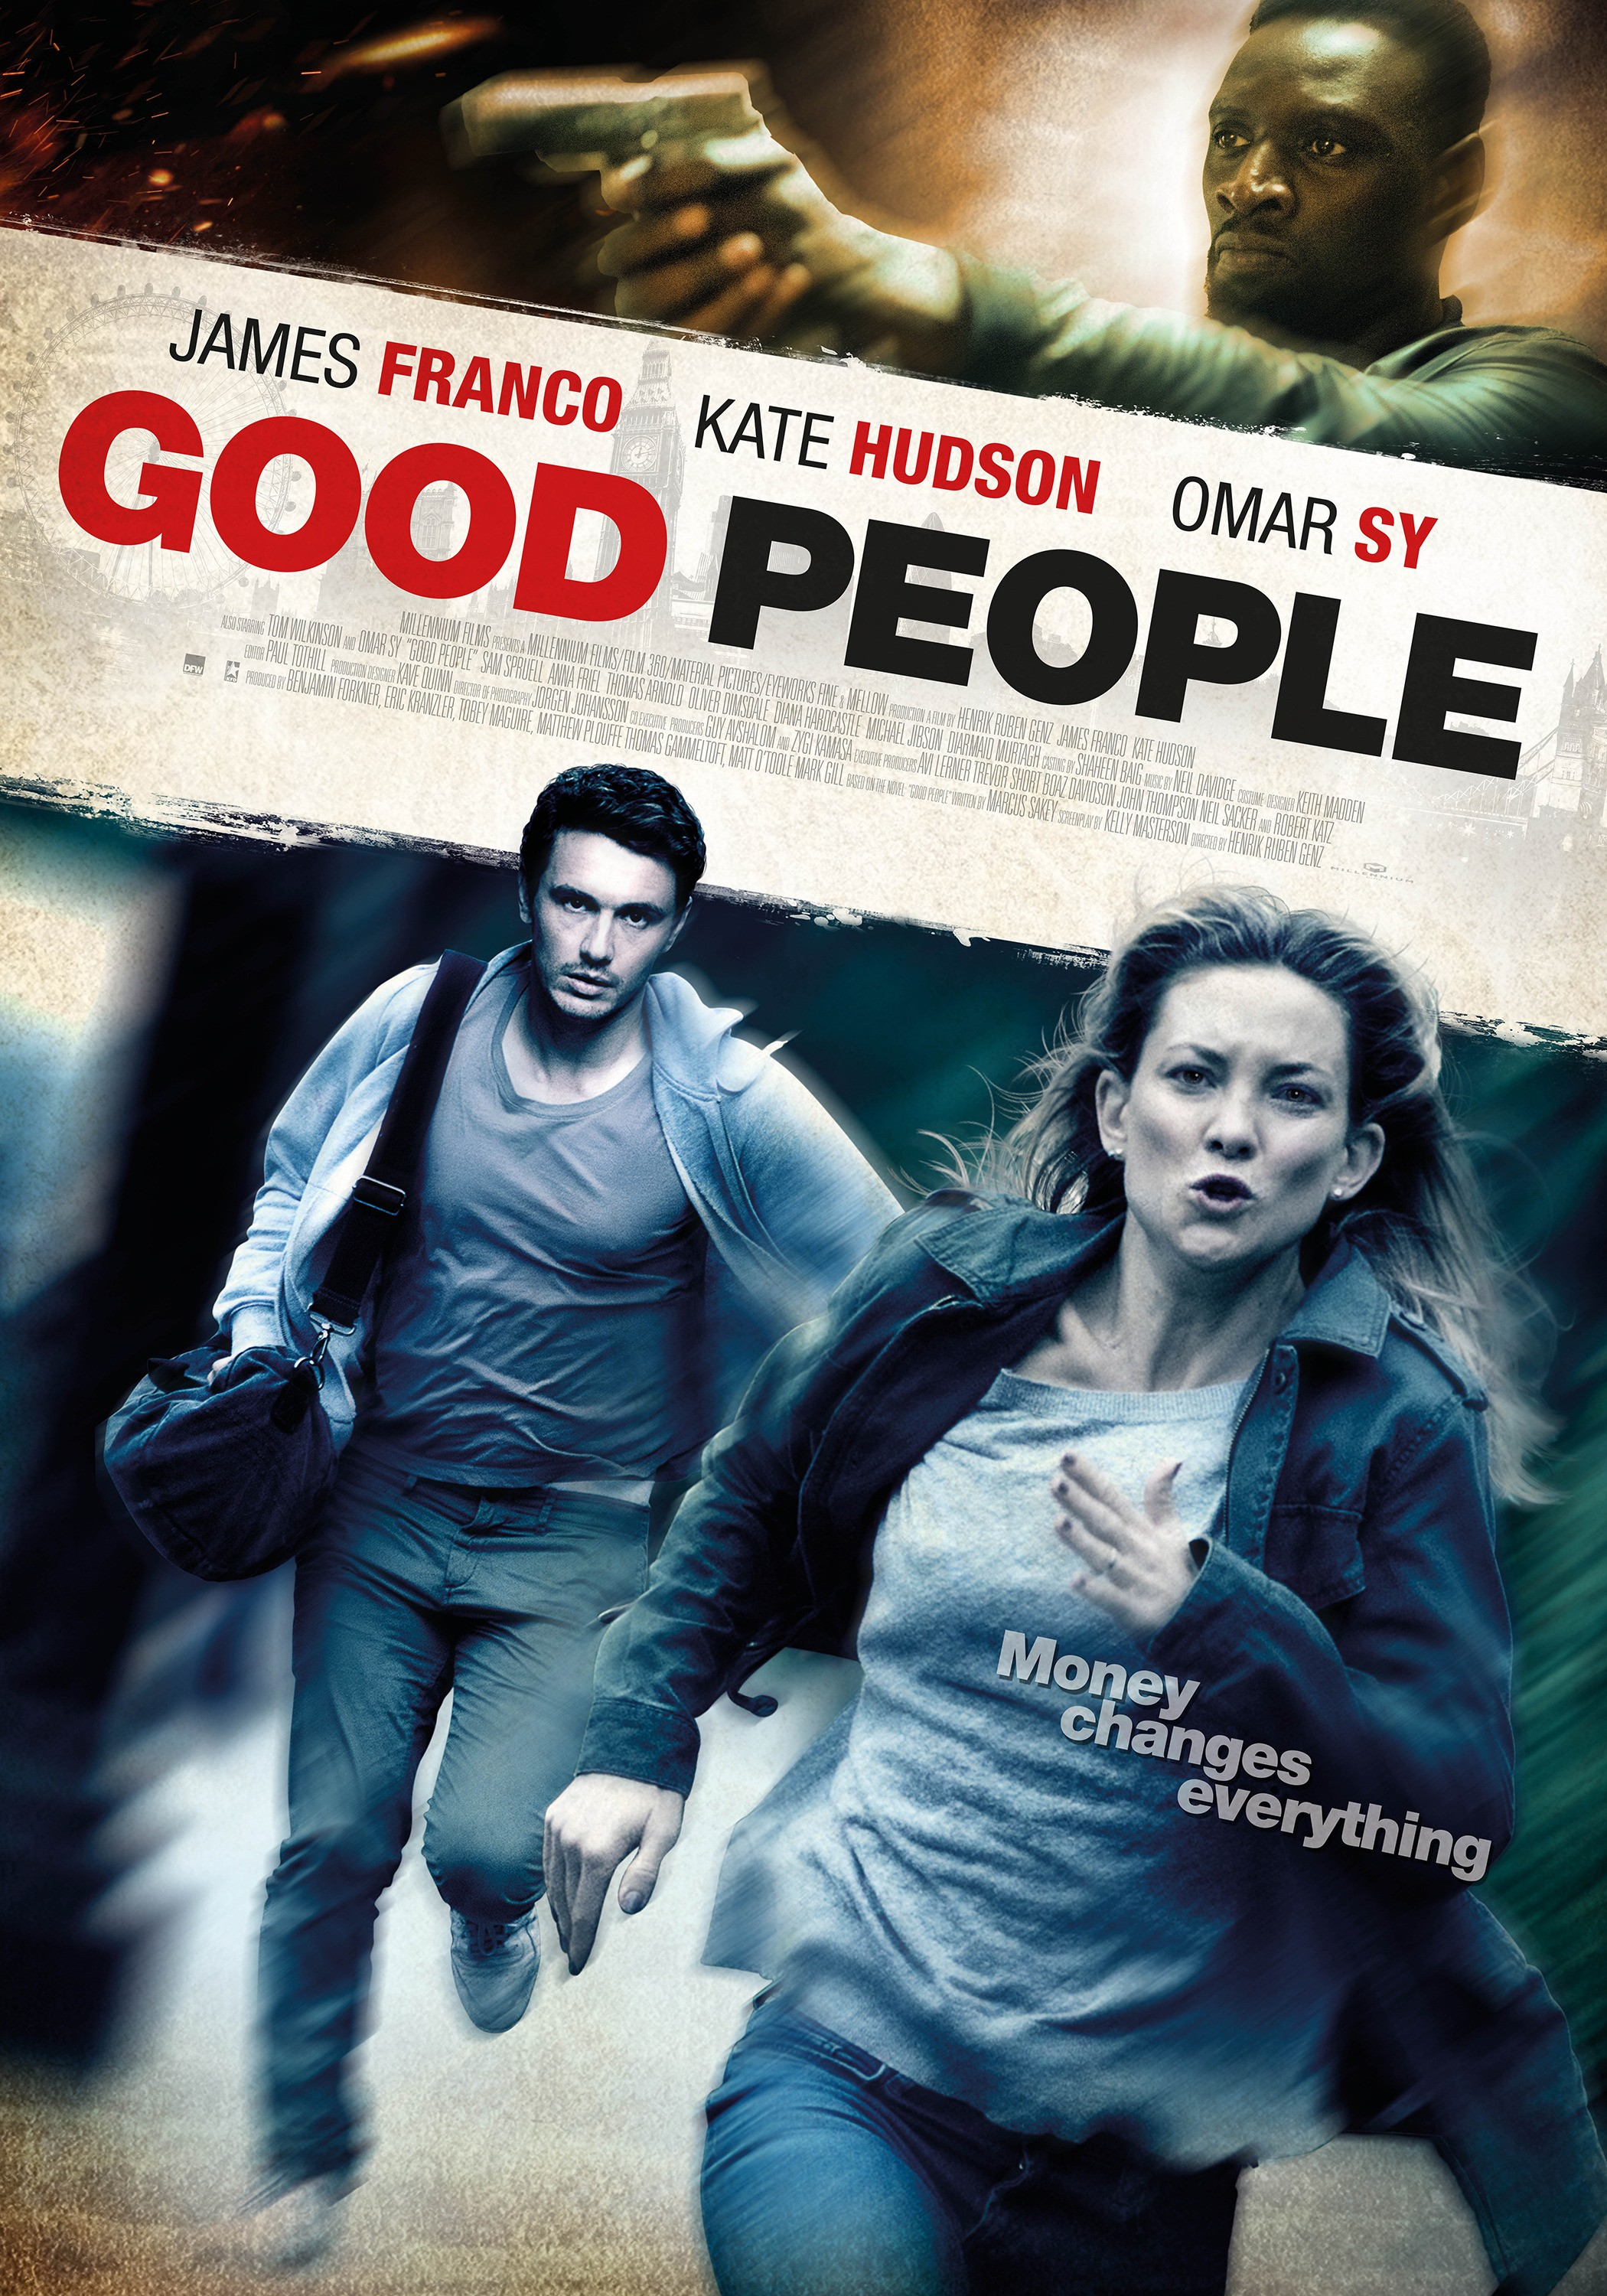 GOOD PEOPLE-Official Poster Banner PROMO XLG-04SETEMBRO2014-01